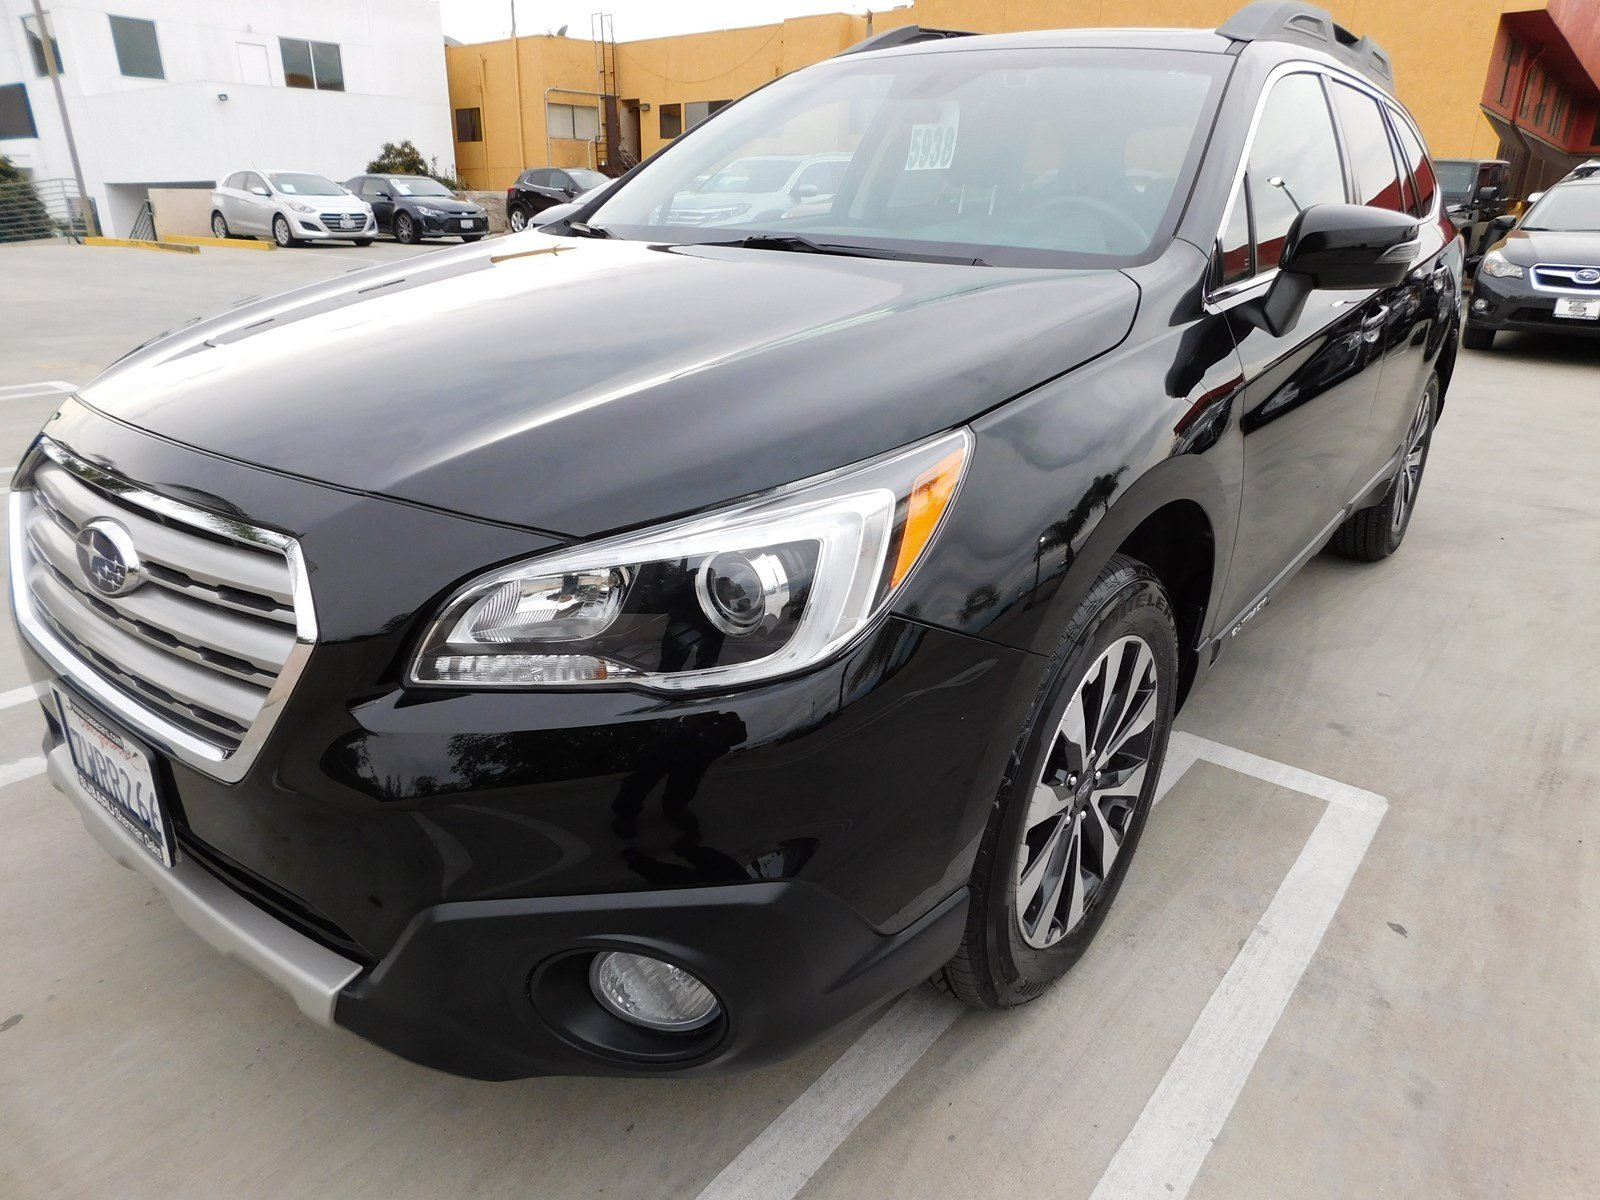 2017 Subaru Outback 2.5i Limited with SUV 901606A-S